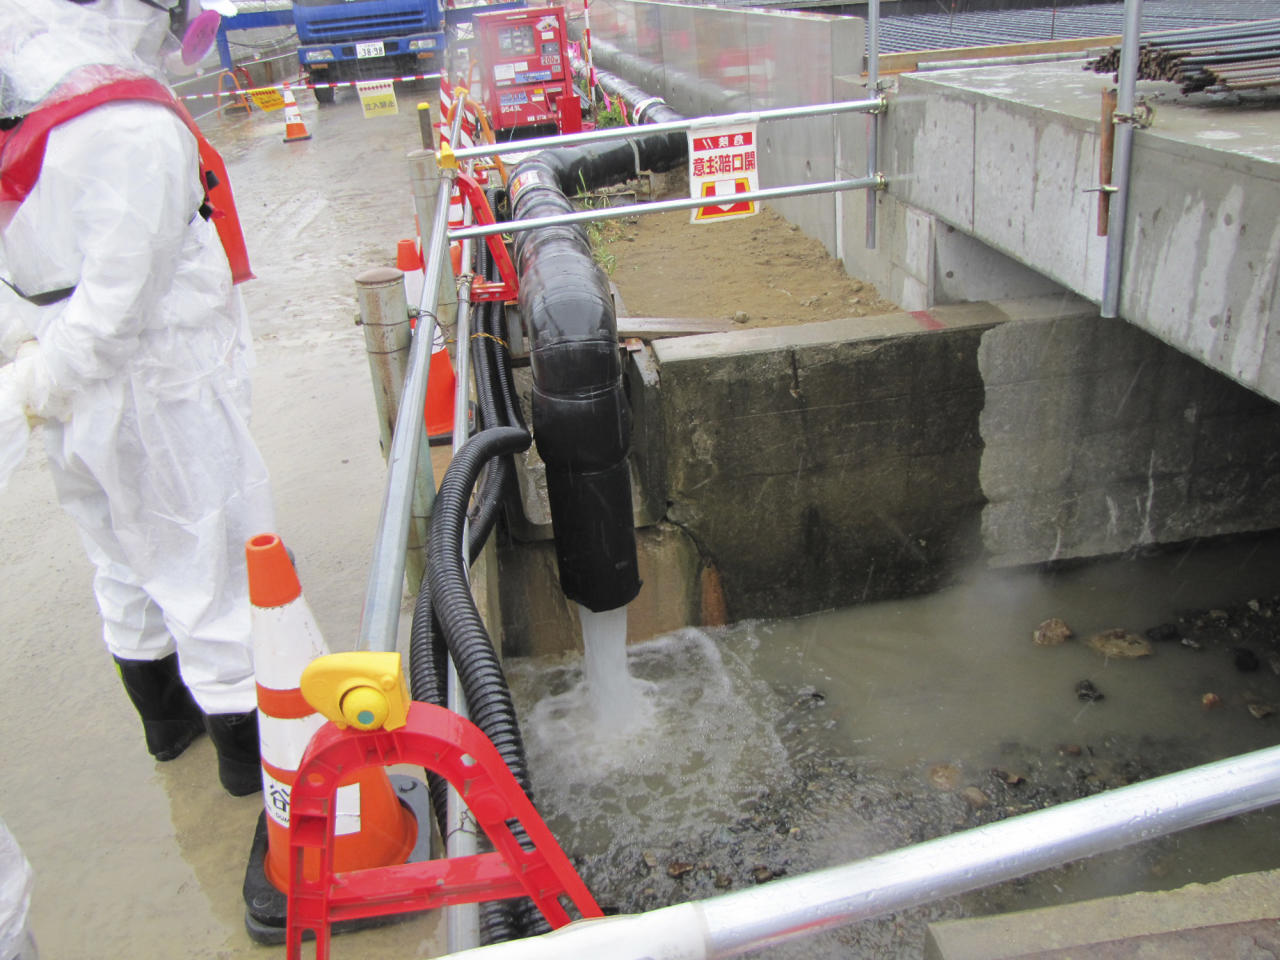 In this photo provided by Tokyo Electric Power Co. (TEPCO), underground water is being released into the ocean through a piping at Fukushima Dai-ichi nuclear plant in Okuma, Fukushima prefecture, northern Japan Wednesday, May 21, 2014. Japan's crippled nuclear power plant has begun releasing groundwater from the least contaminated areas of the facility into the ocean so it does not run into contaminated areas and create more toxic water amid storage space limitations. (AP Photo/Tokyo Electric Power Co. )